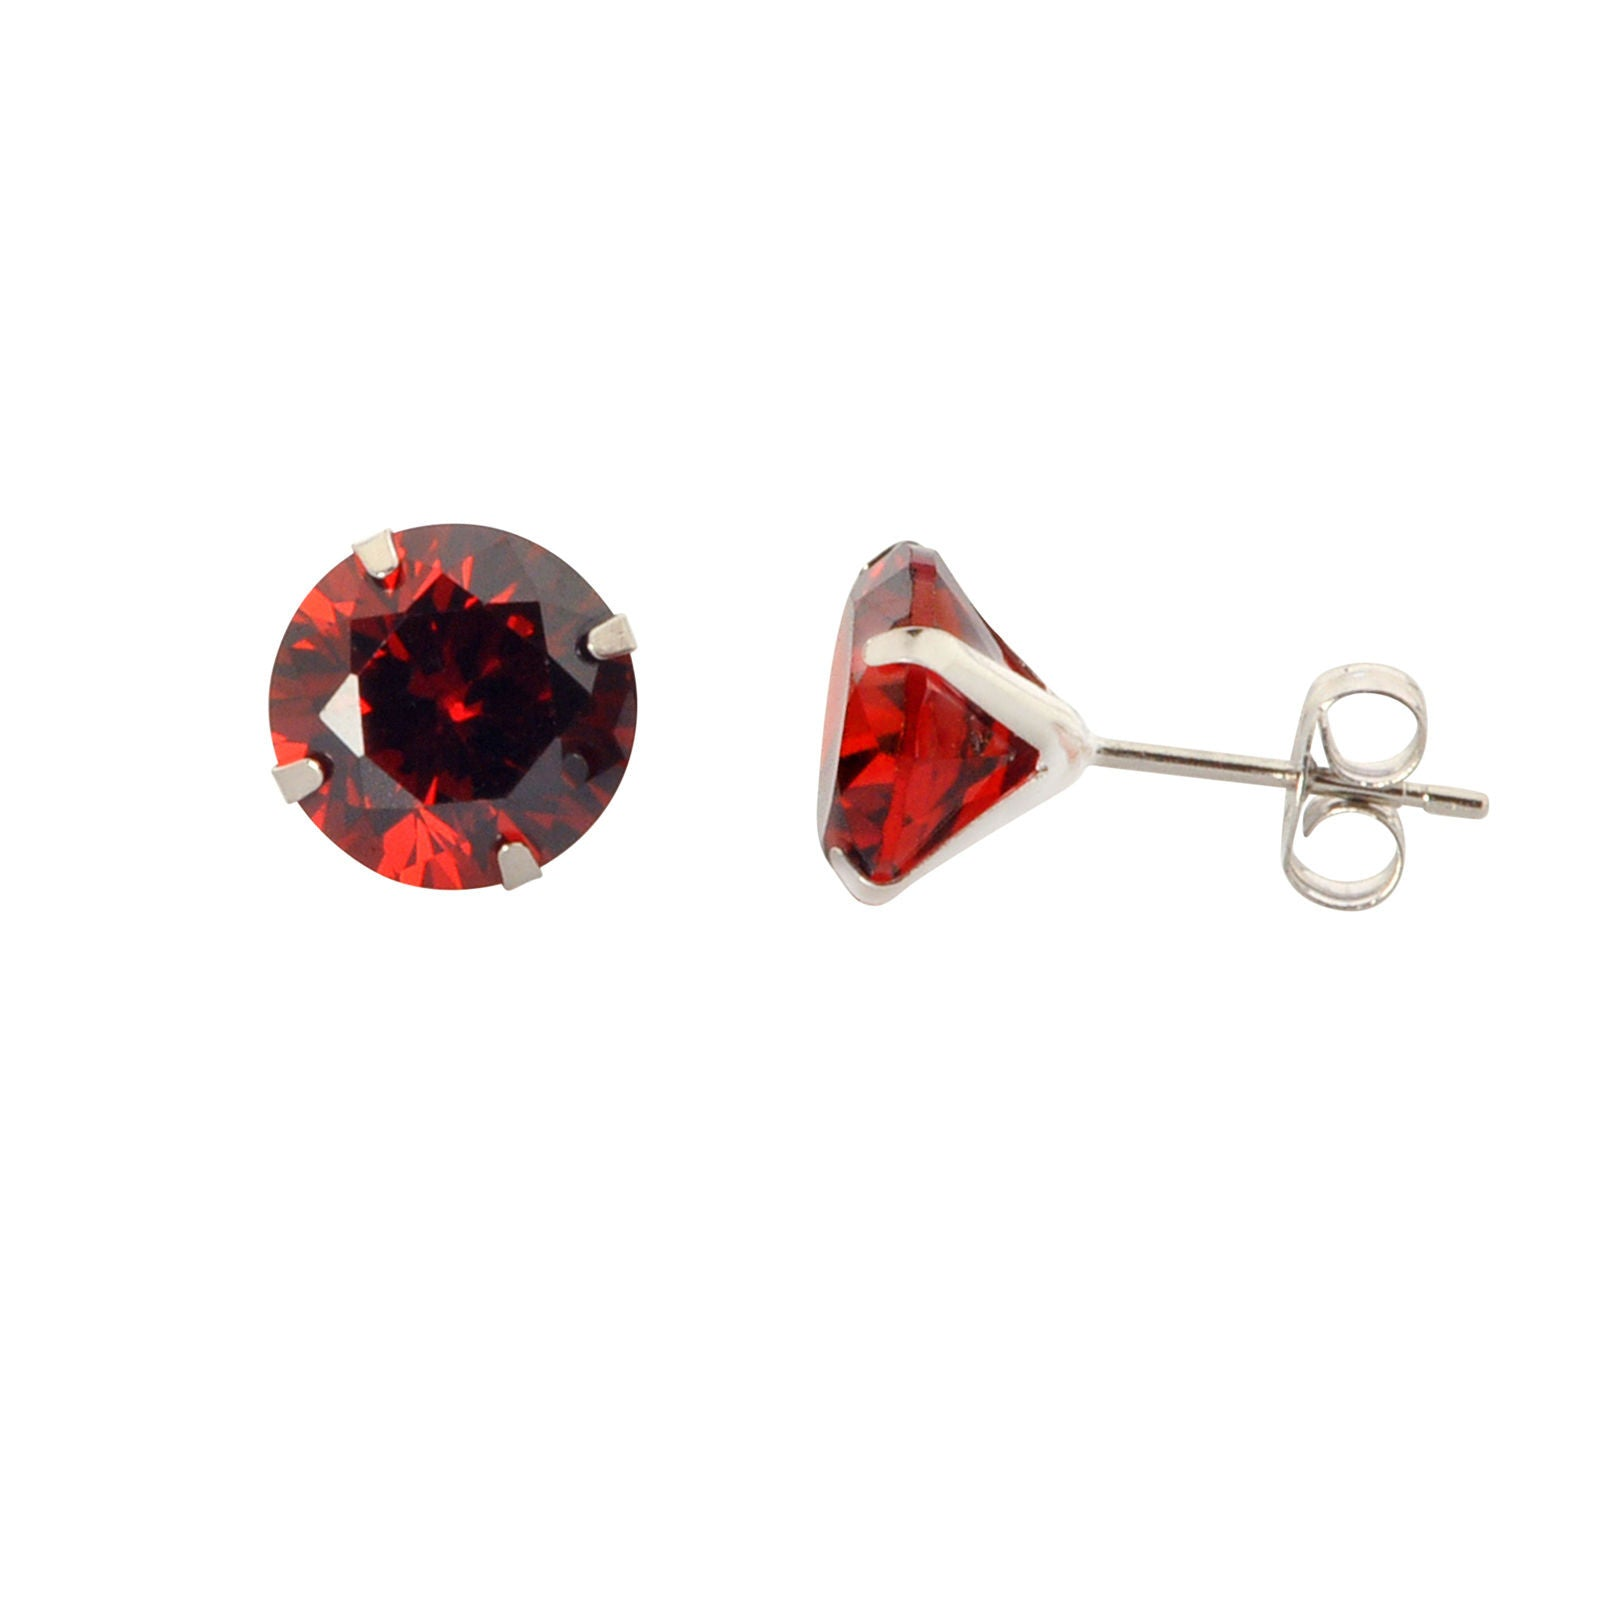 14k White Gold Round Red Cubic Zirconia Stud Earrings